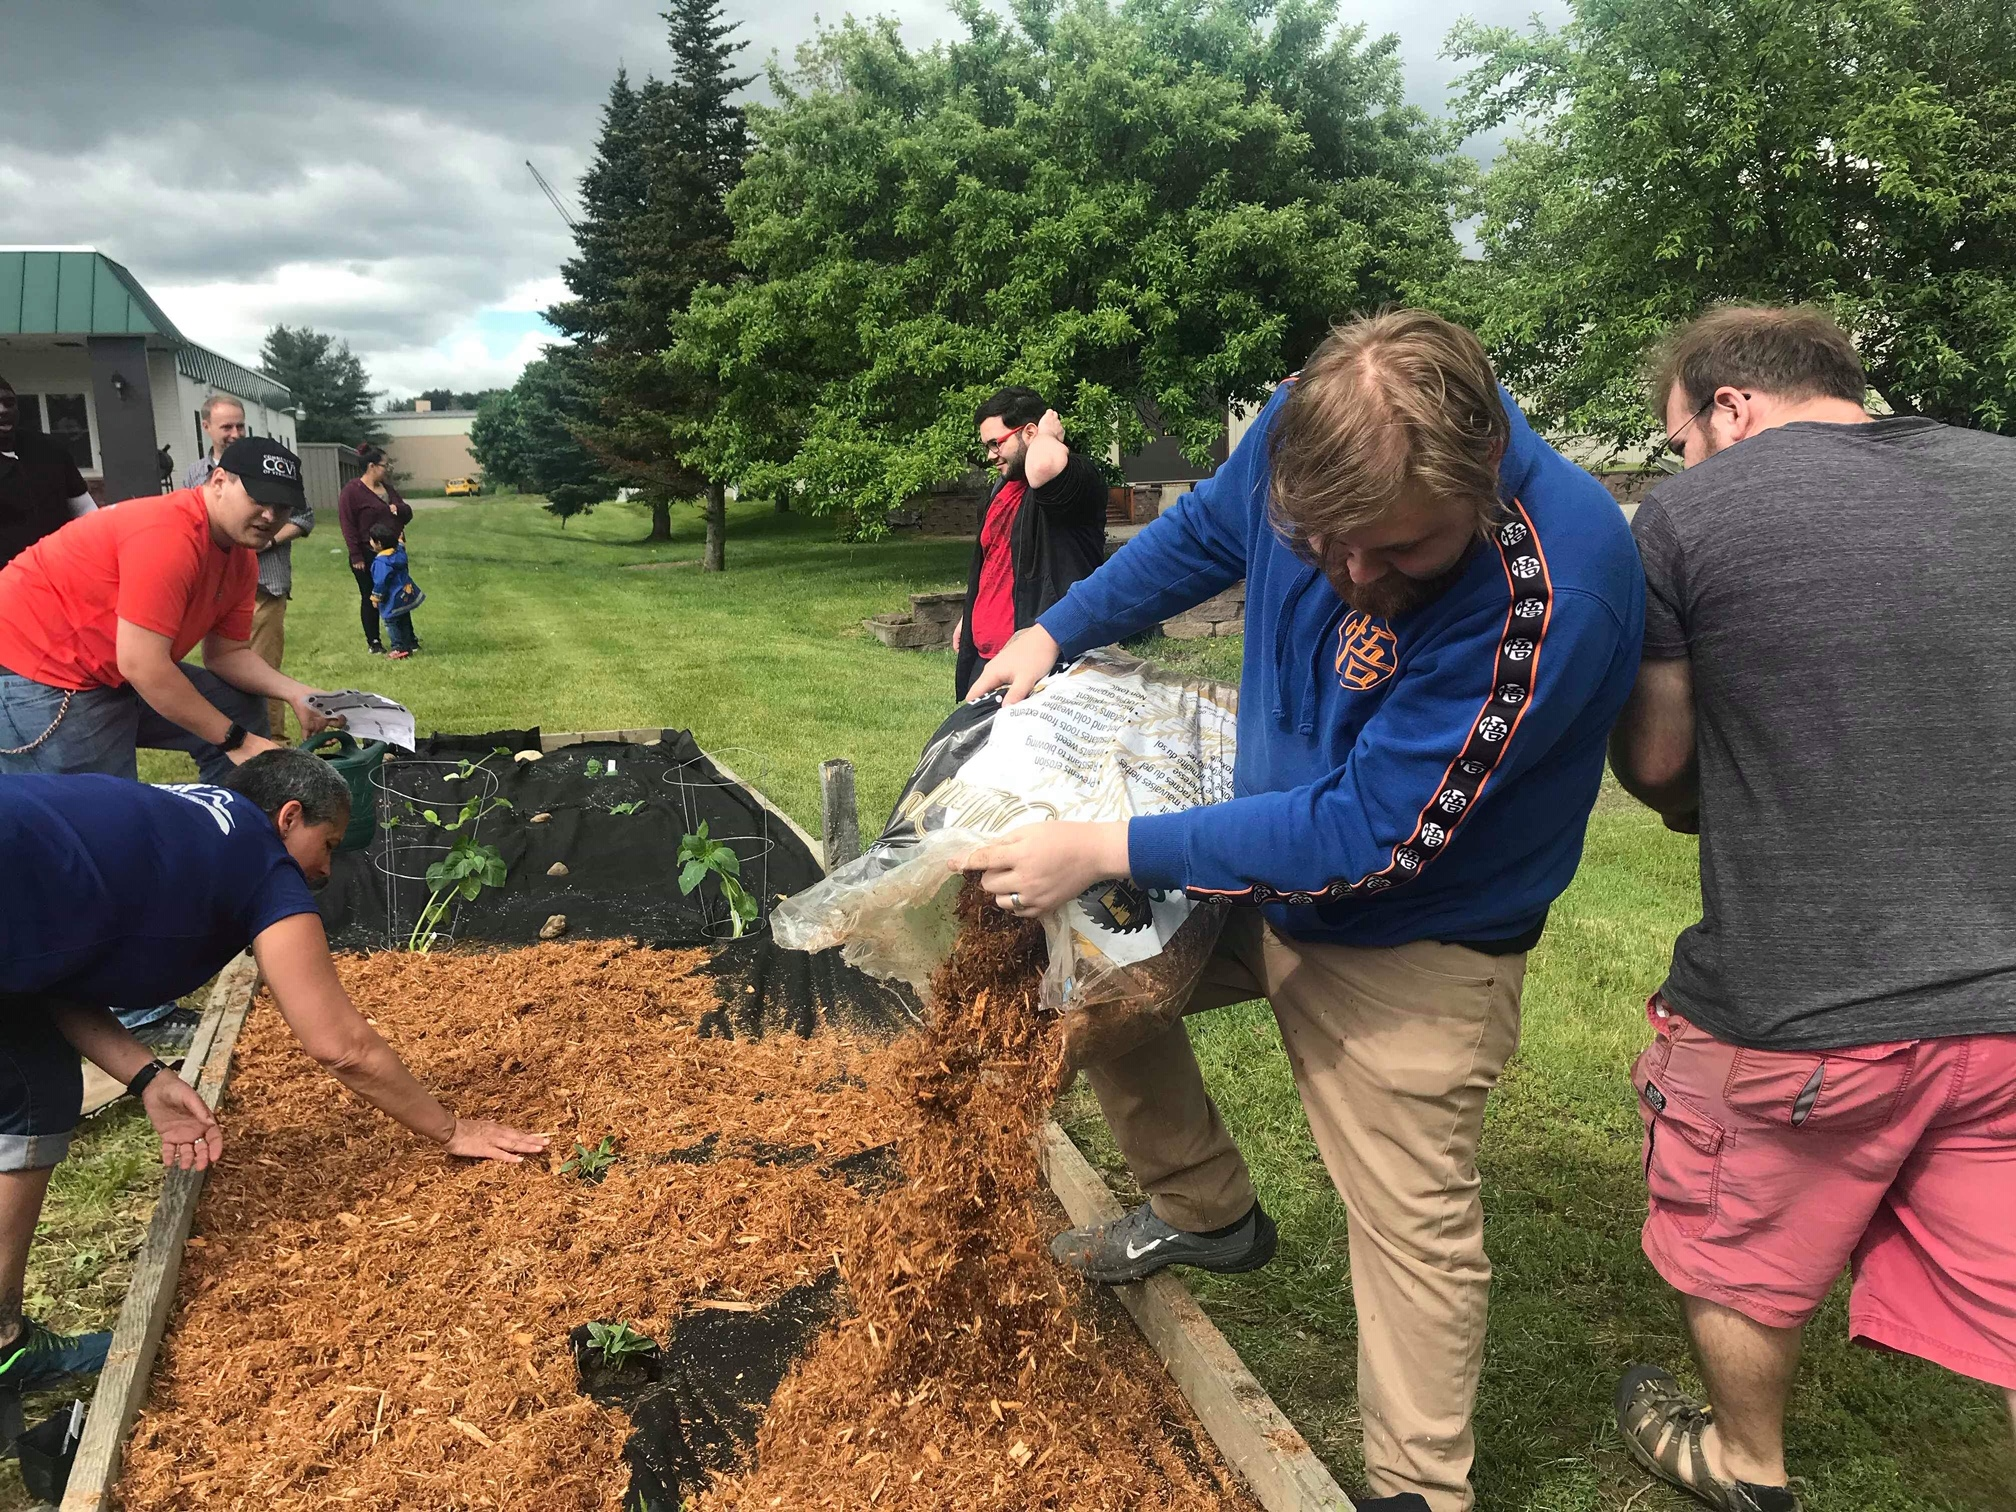 Students and staff at CCV-Morrisville planted a community garden on June 14th.